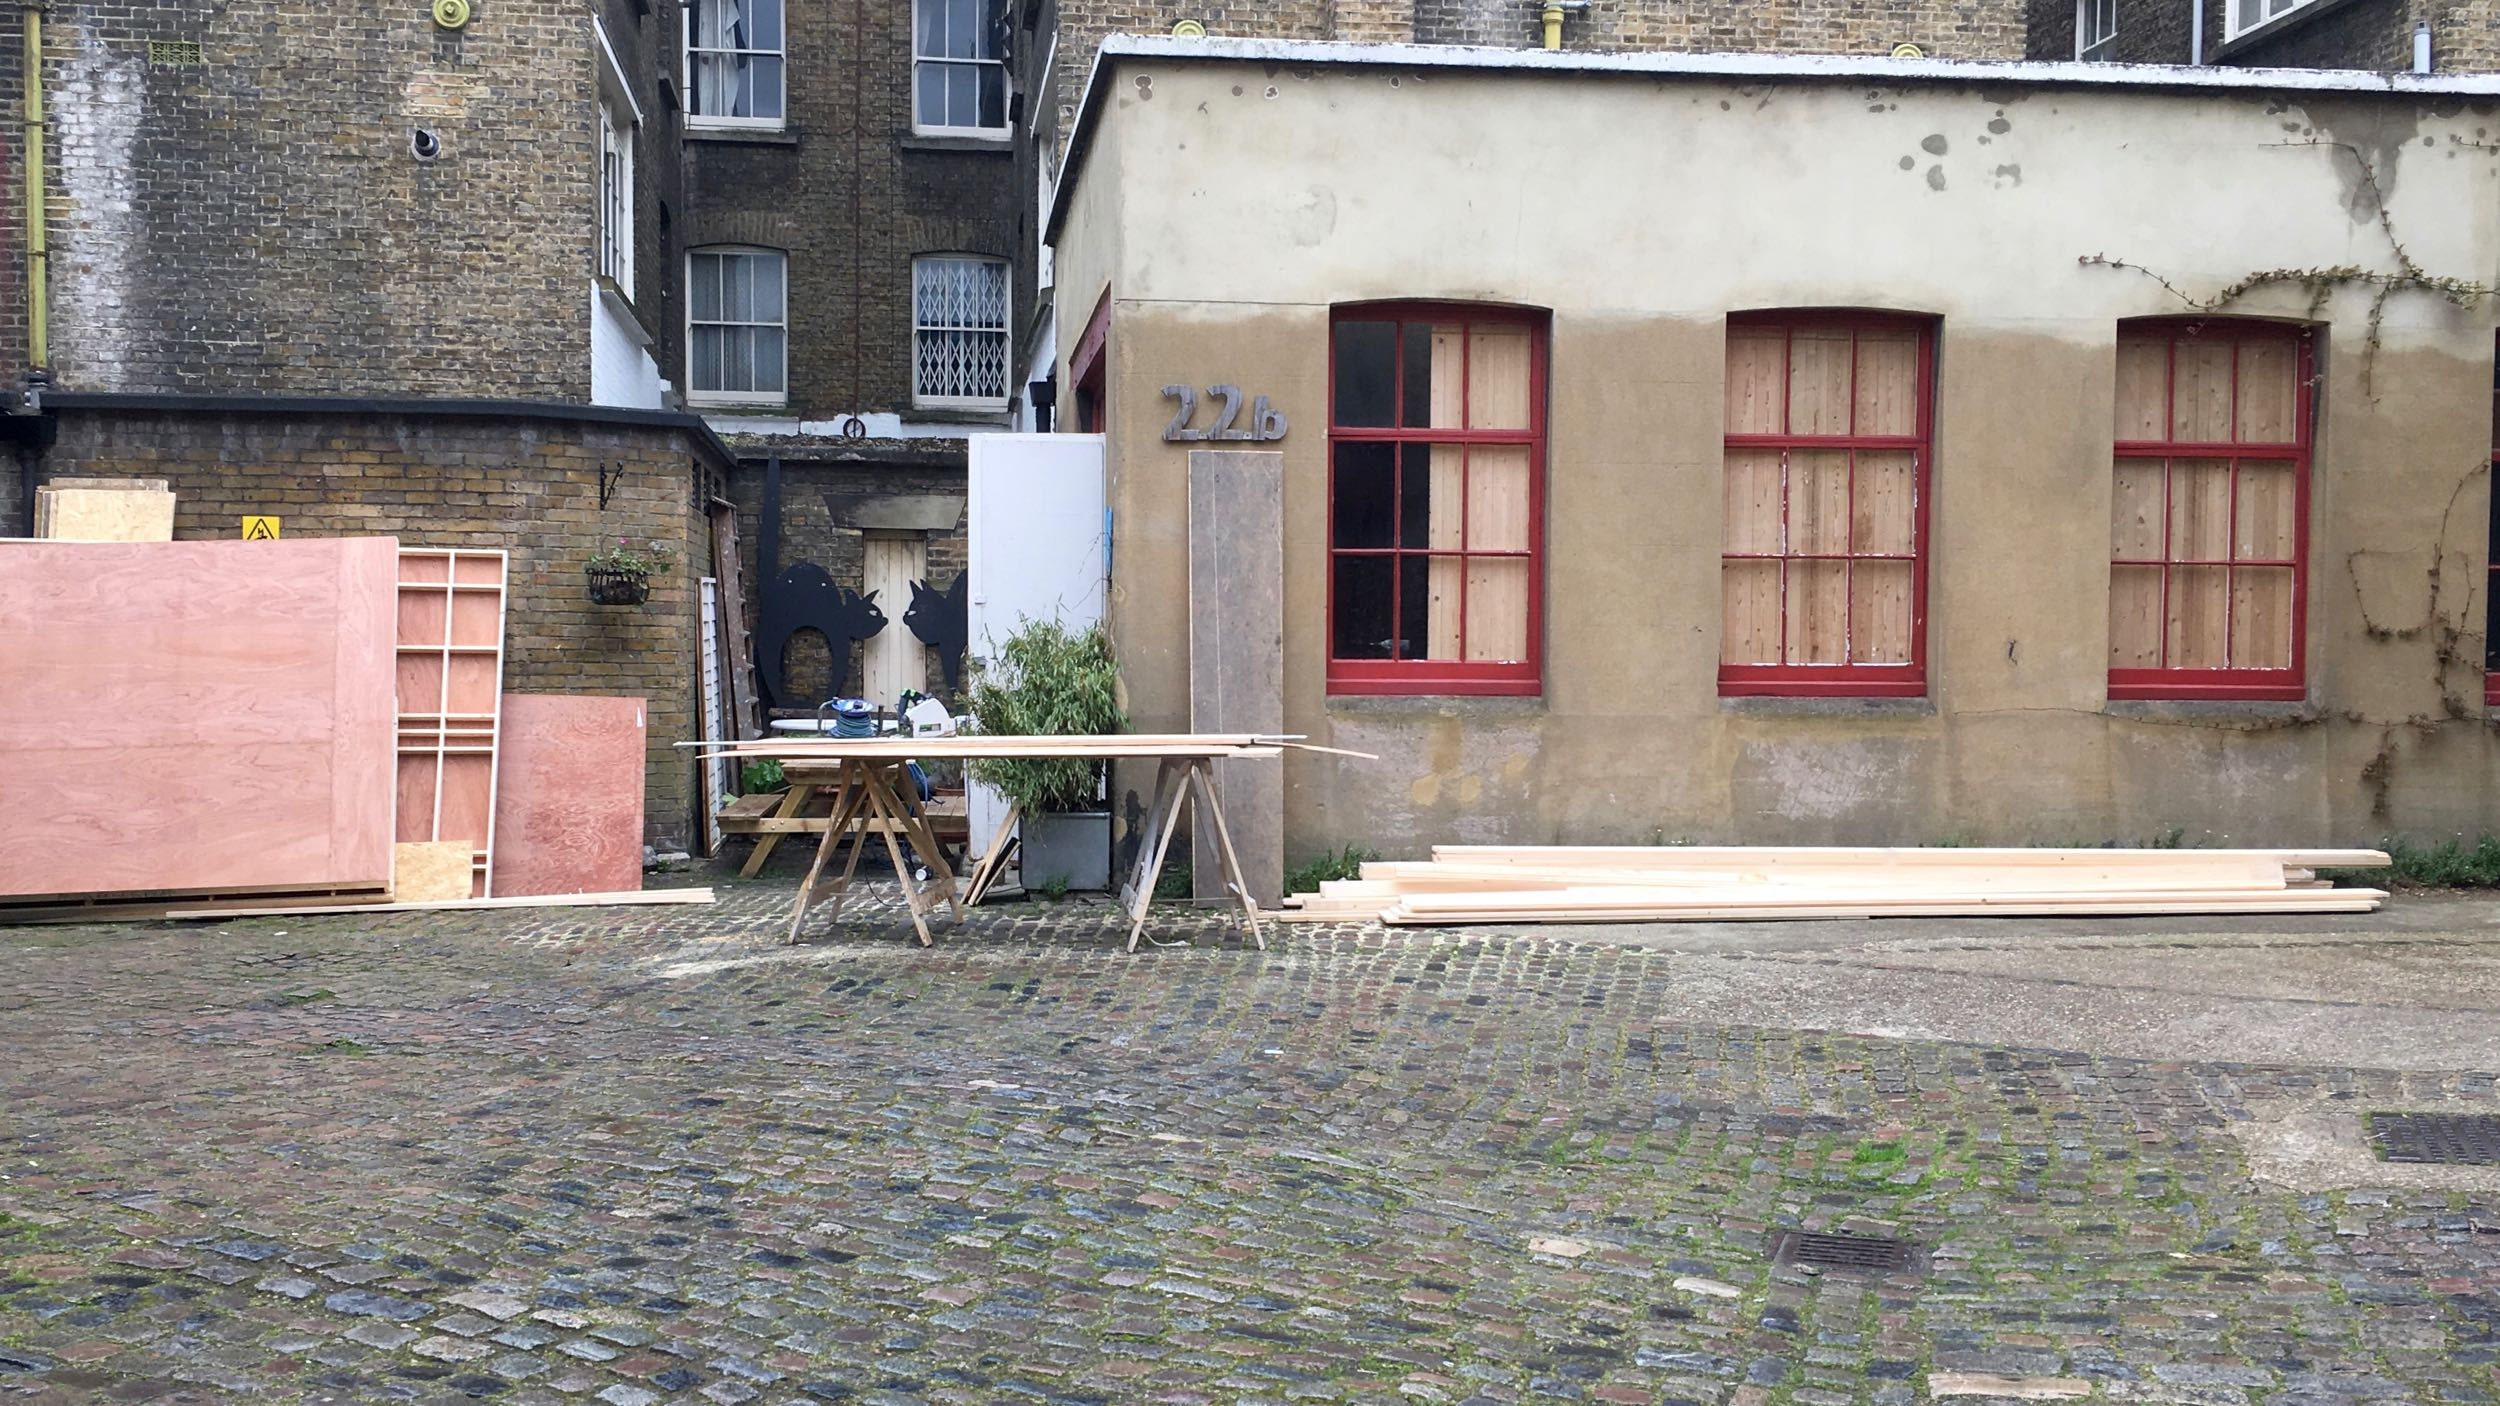 paramount Set builders spreading out in iliffe yard,building a set in Studio Boardroom For Brad Pitts latest film 'Allied' to be released in November 2016.